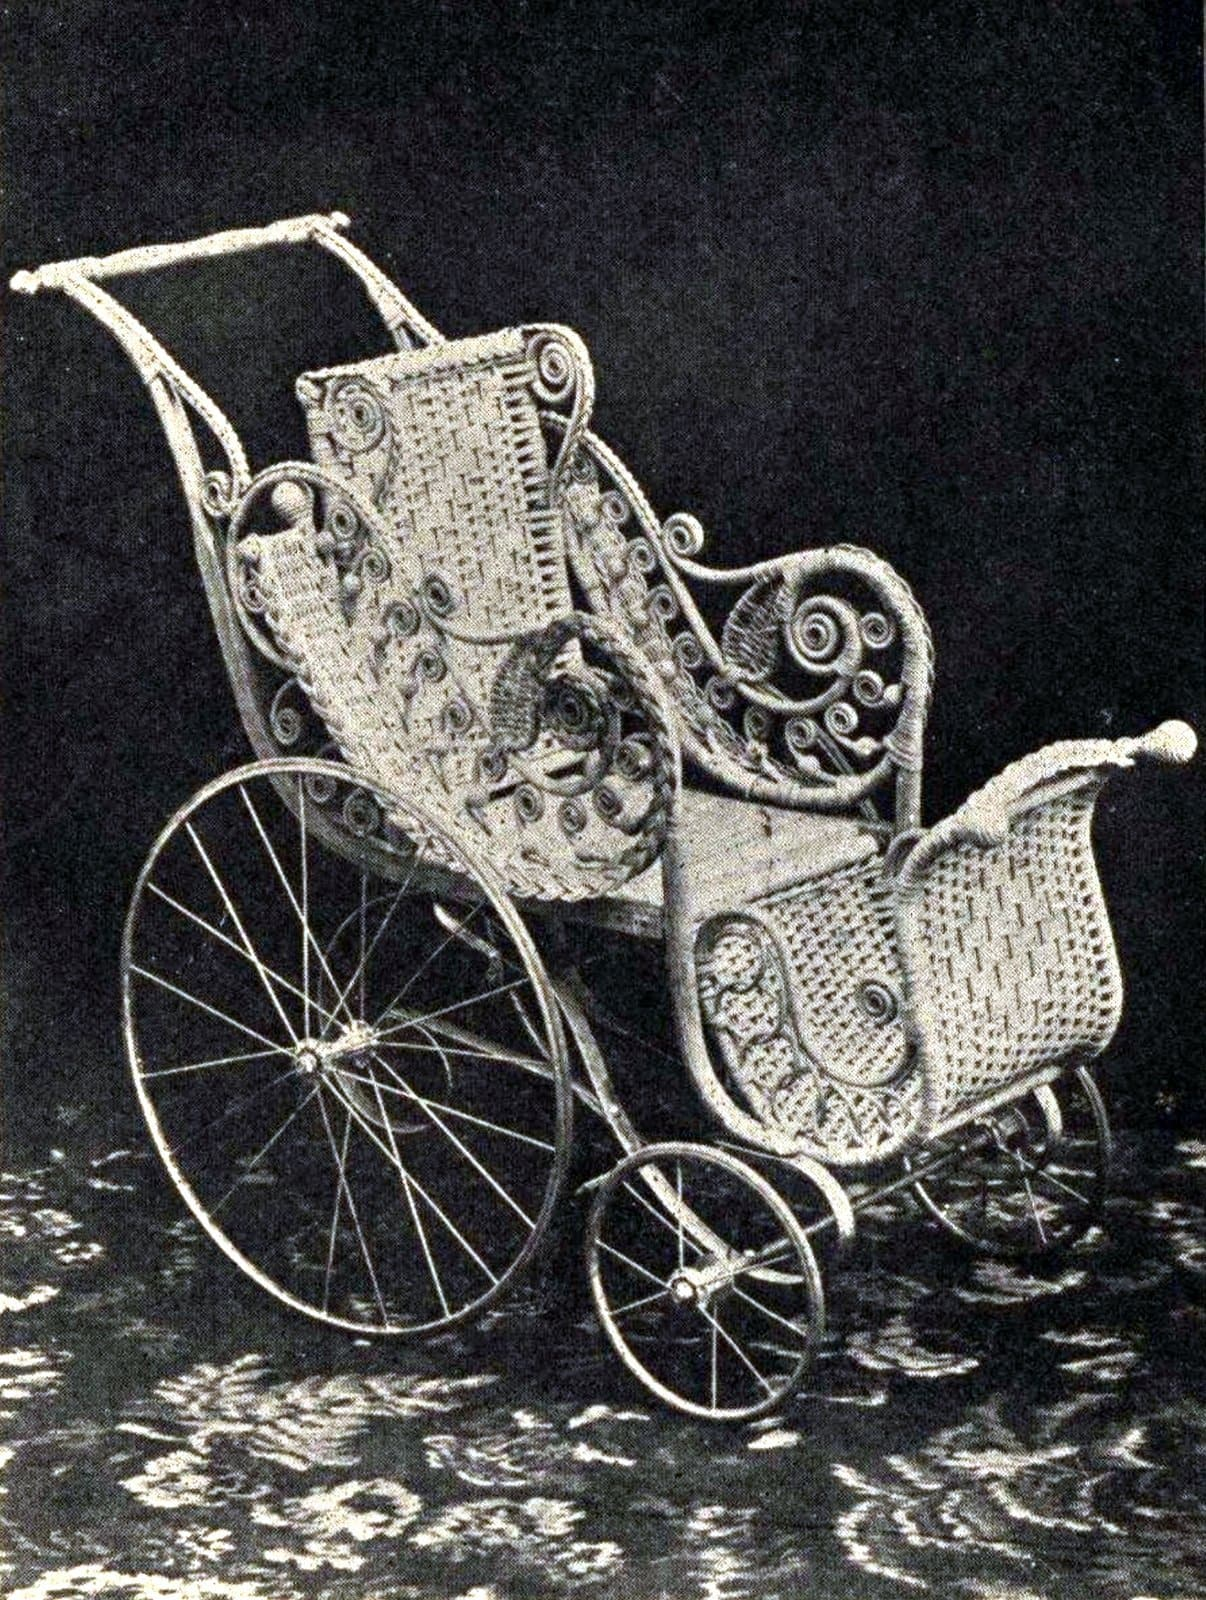 Antique wicker stroller from 1900